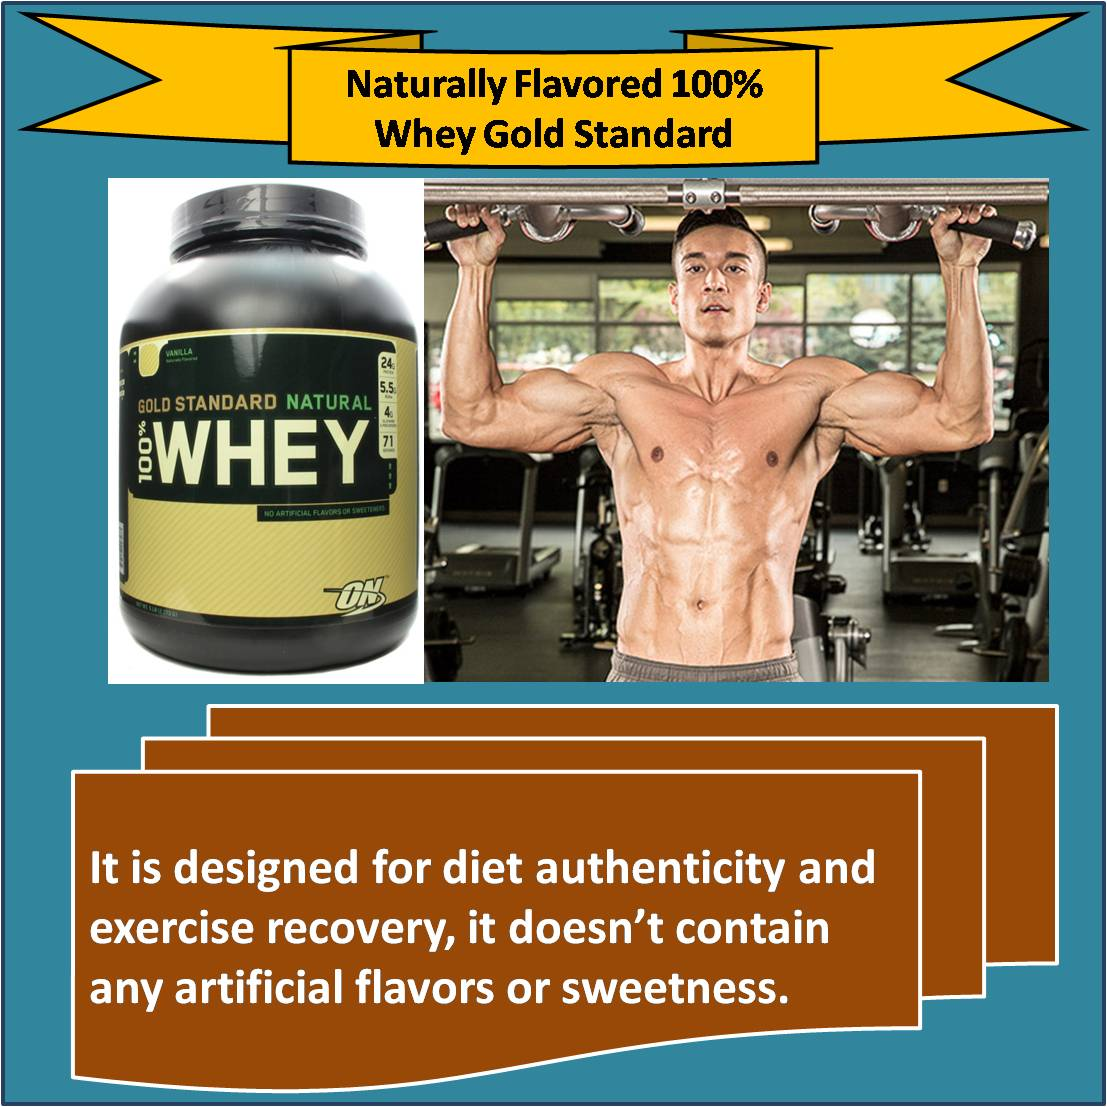 Naturally Flavored 100 percent Whey Gold Standard